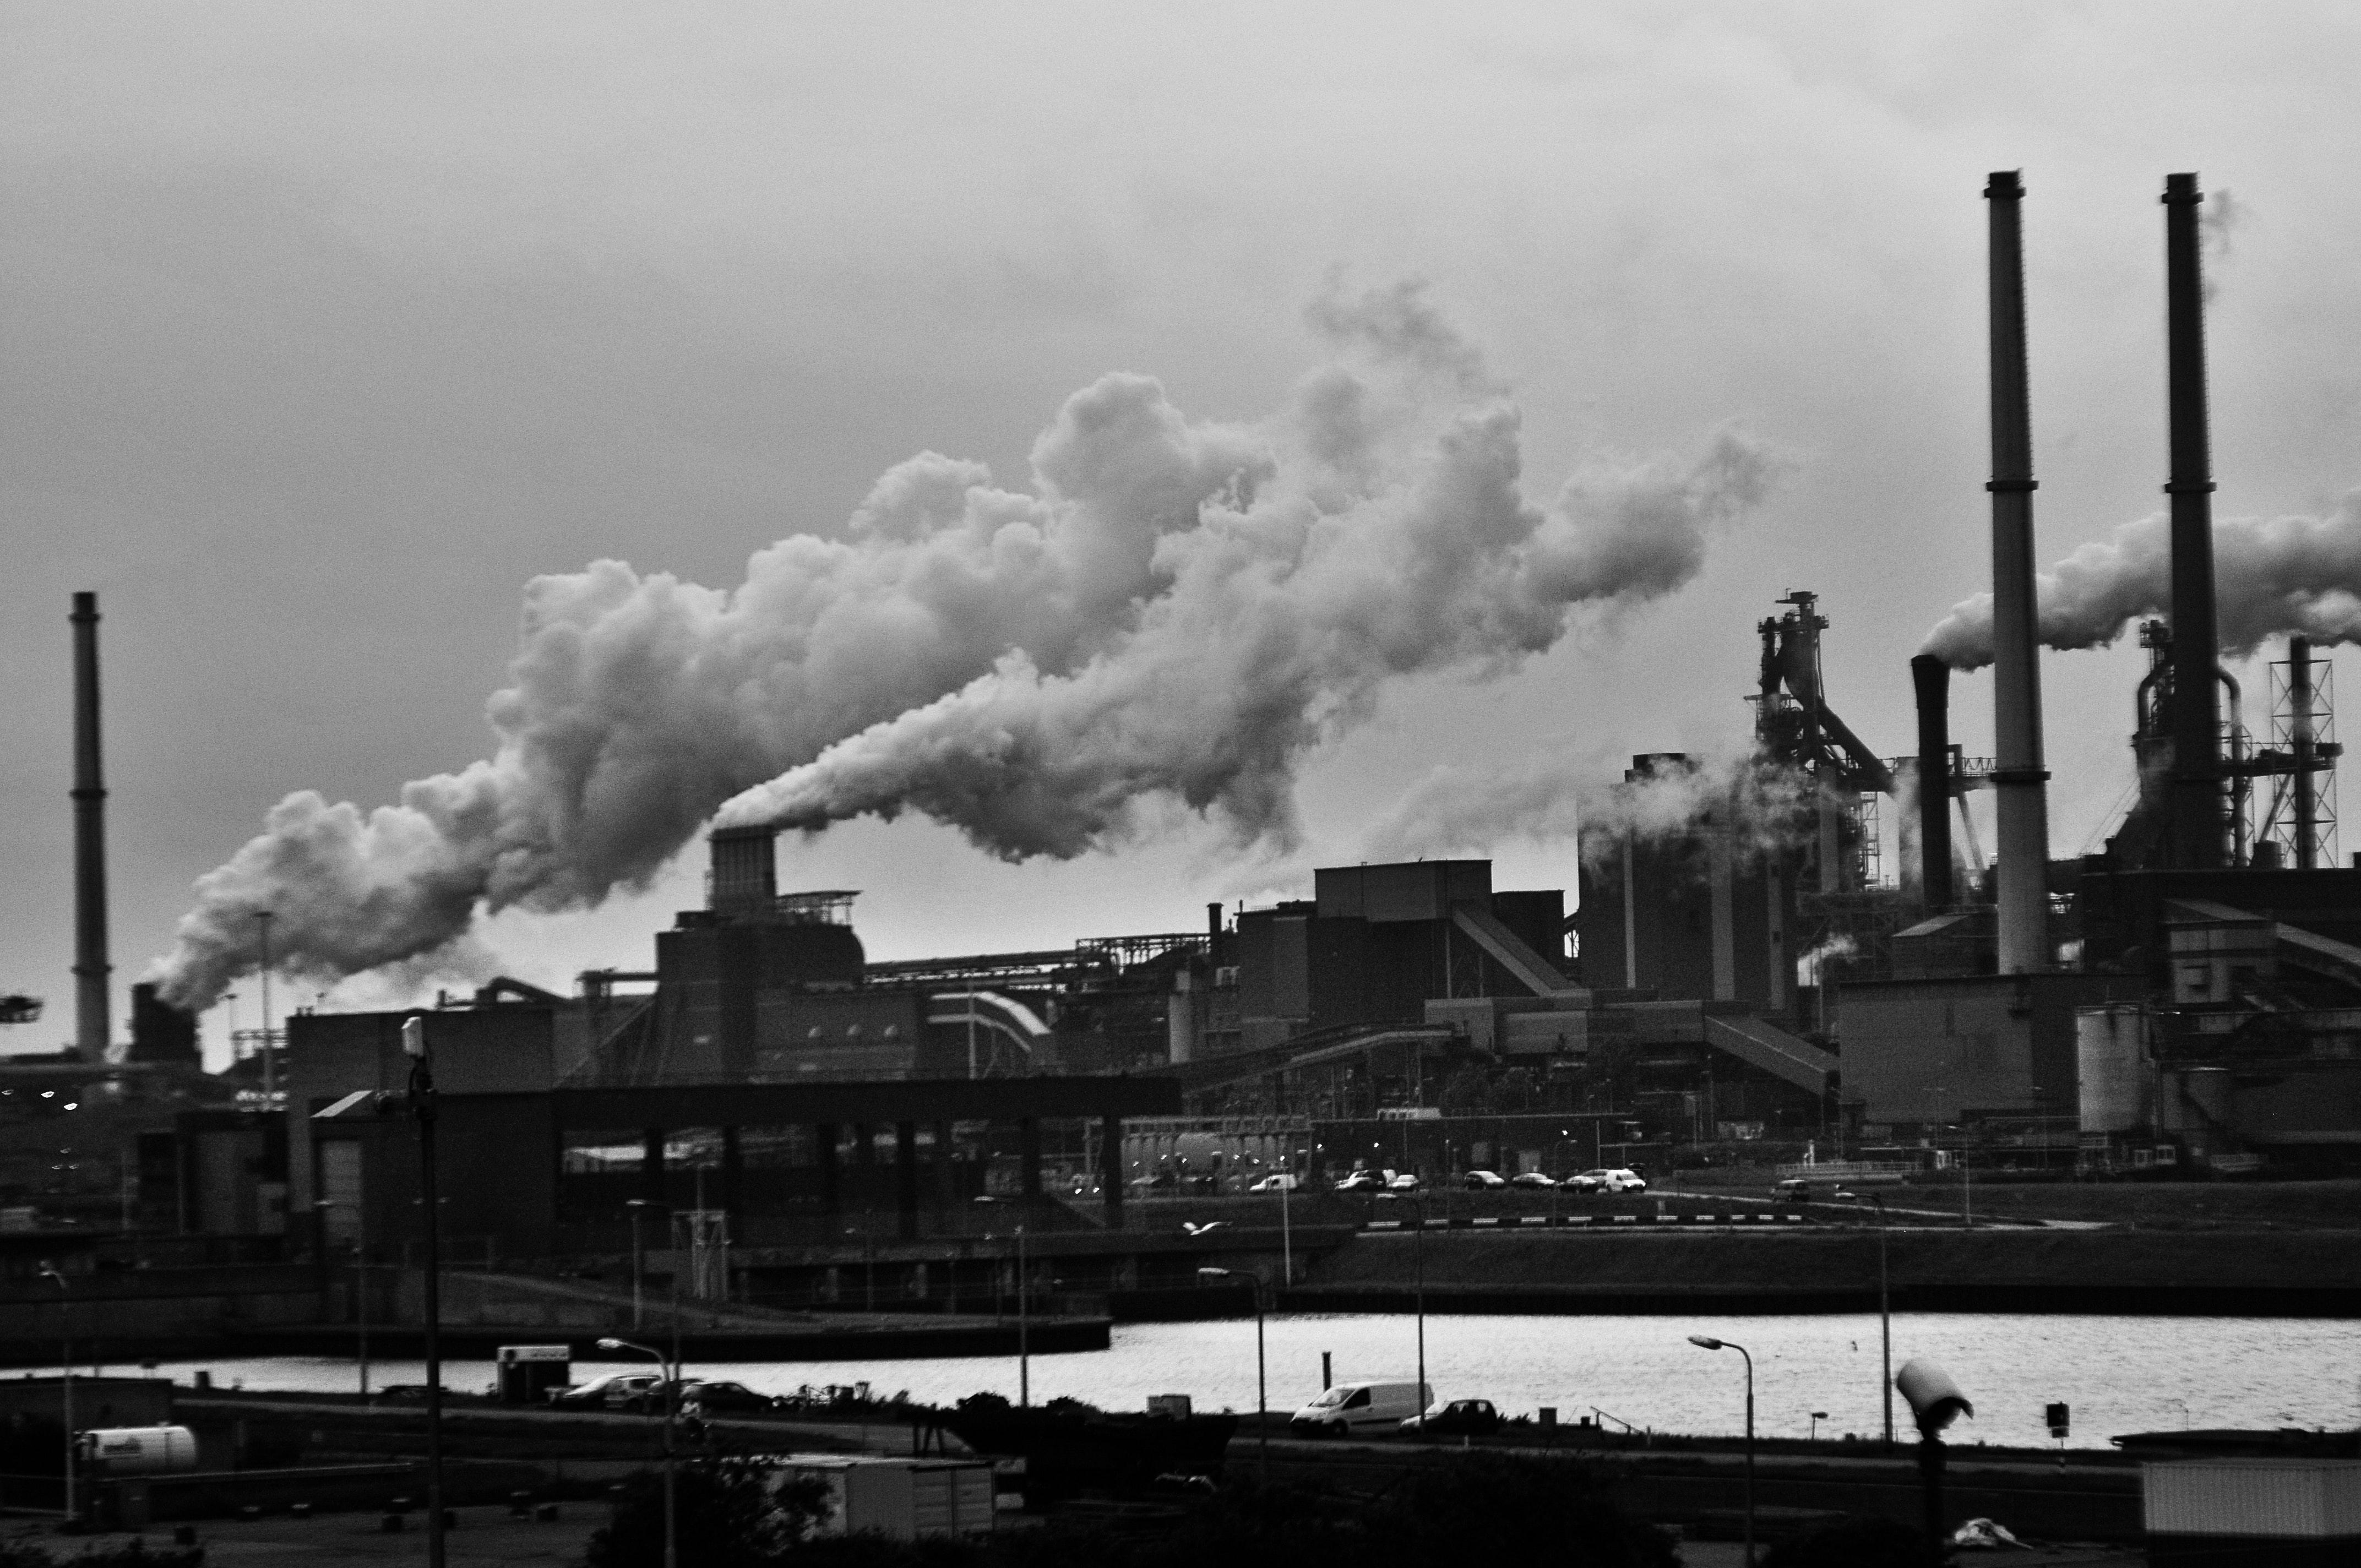 Grayscale Photography of Locomotive Train Beside Factory, Air pollution, Pollution, Technology, Smoke, HQ Photo